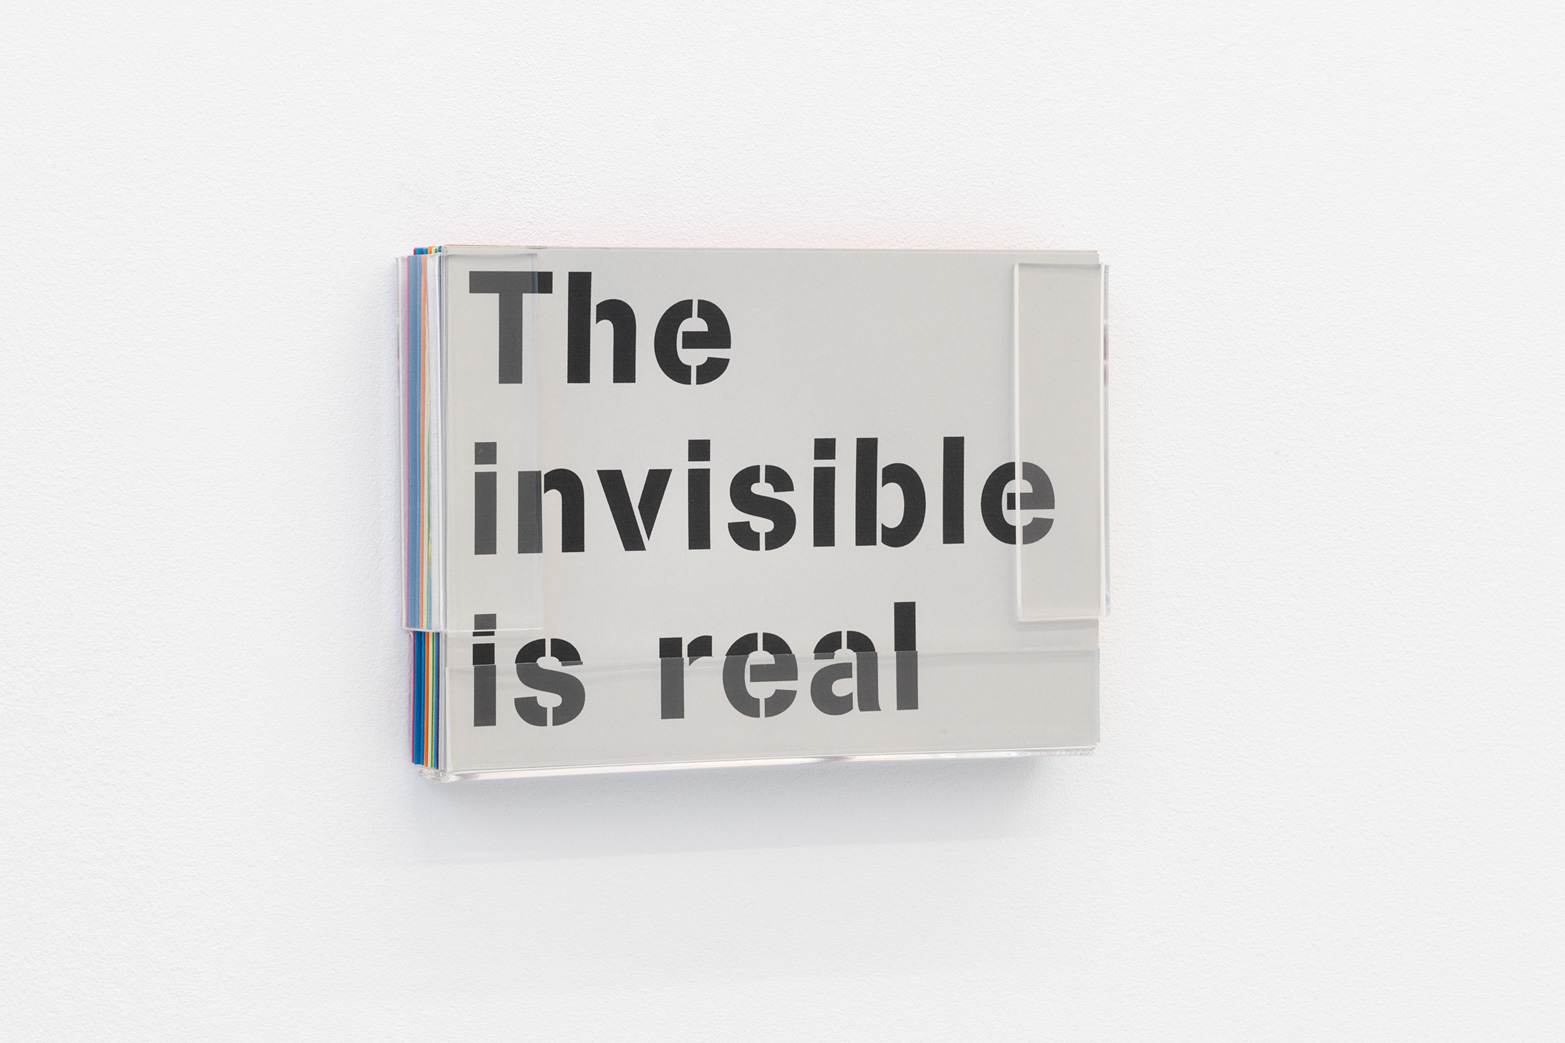 Ian Whittlesea , The invisible is real, (Walter De Maria), 2006. Tenderpixel.